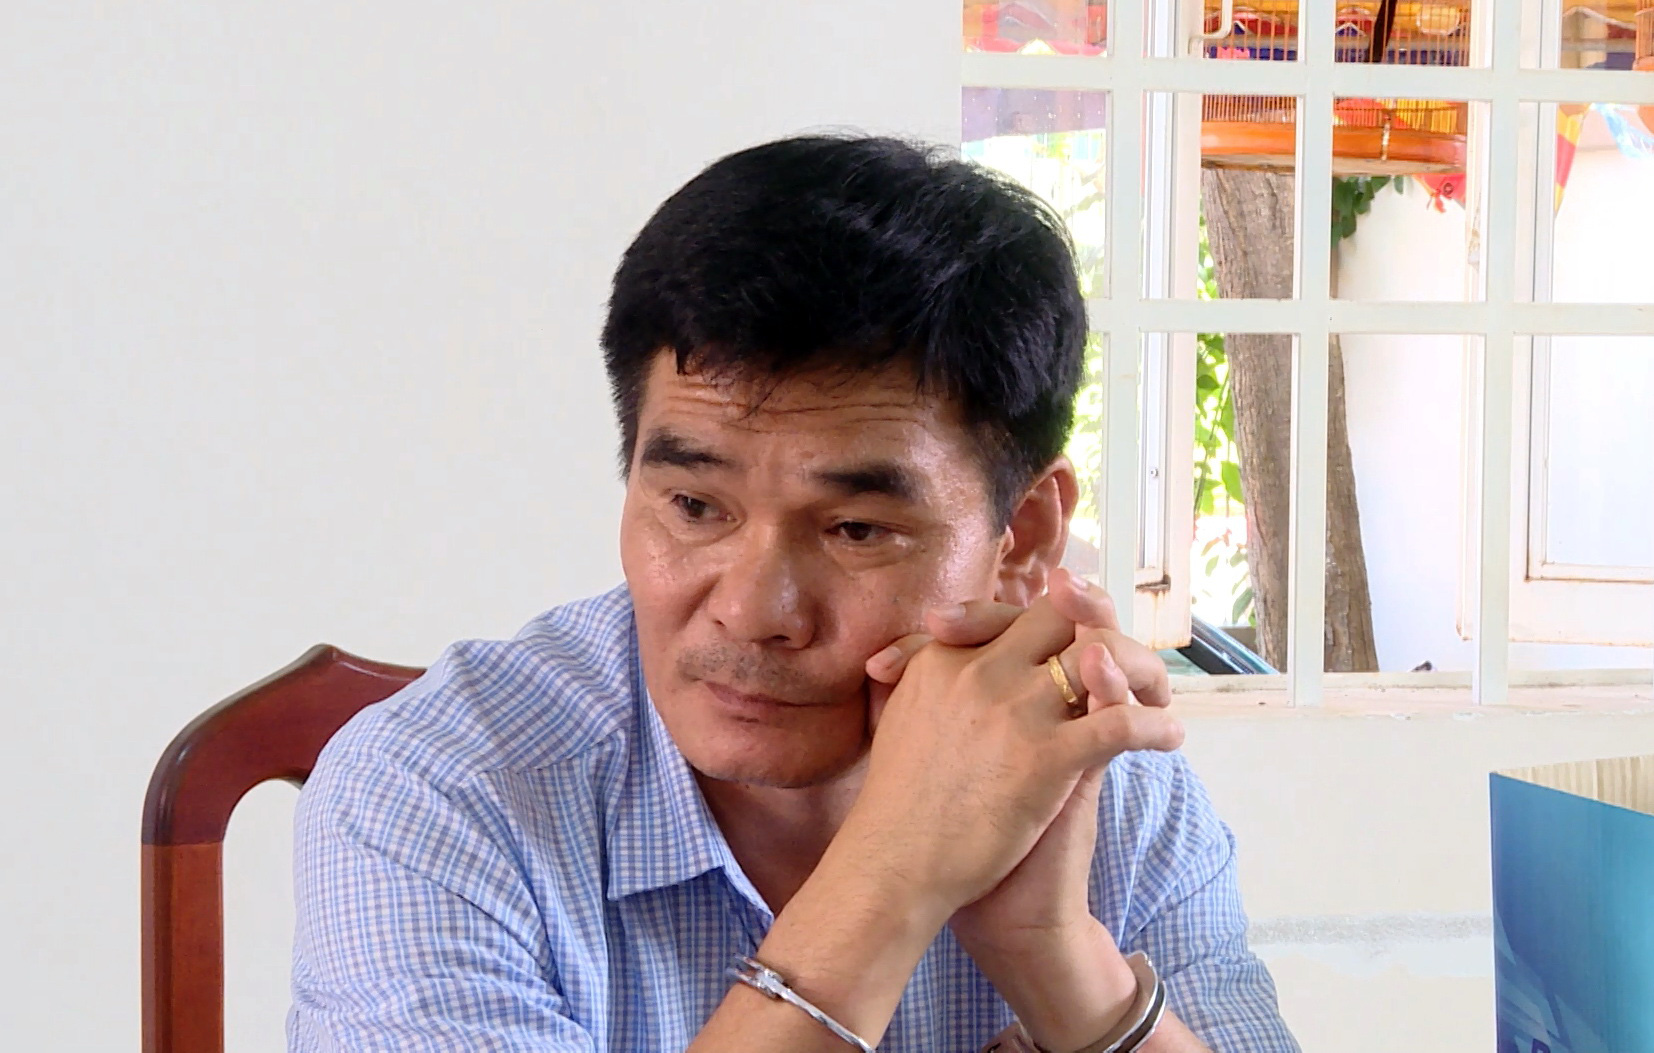 Police nab bogus reporter in southern Vietnam for blackmail